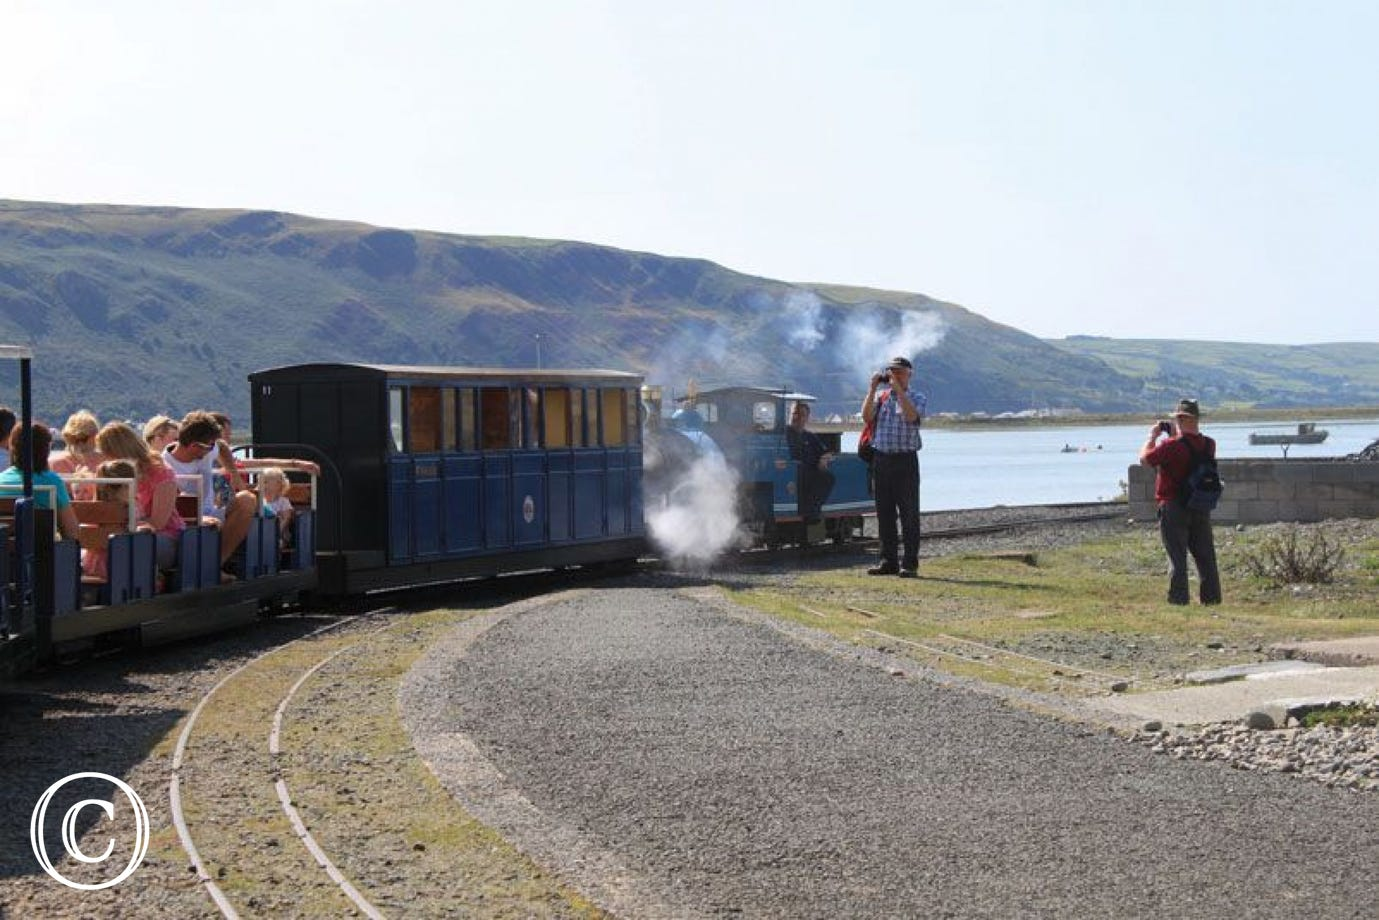 Ride Fairbourne's miniature steam train to the Mawddach Estuary